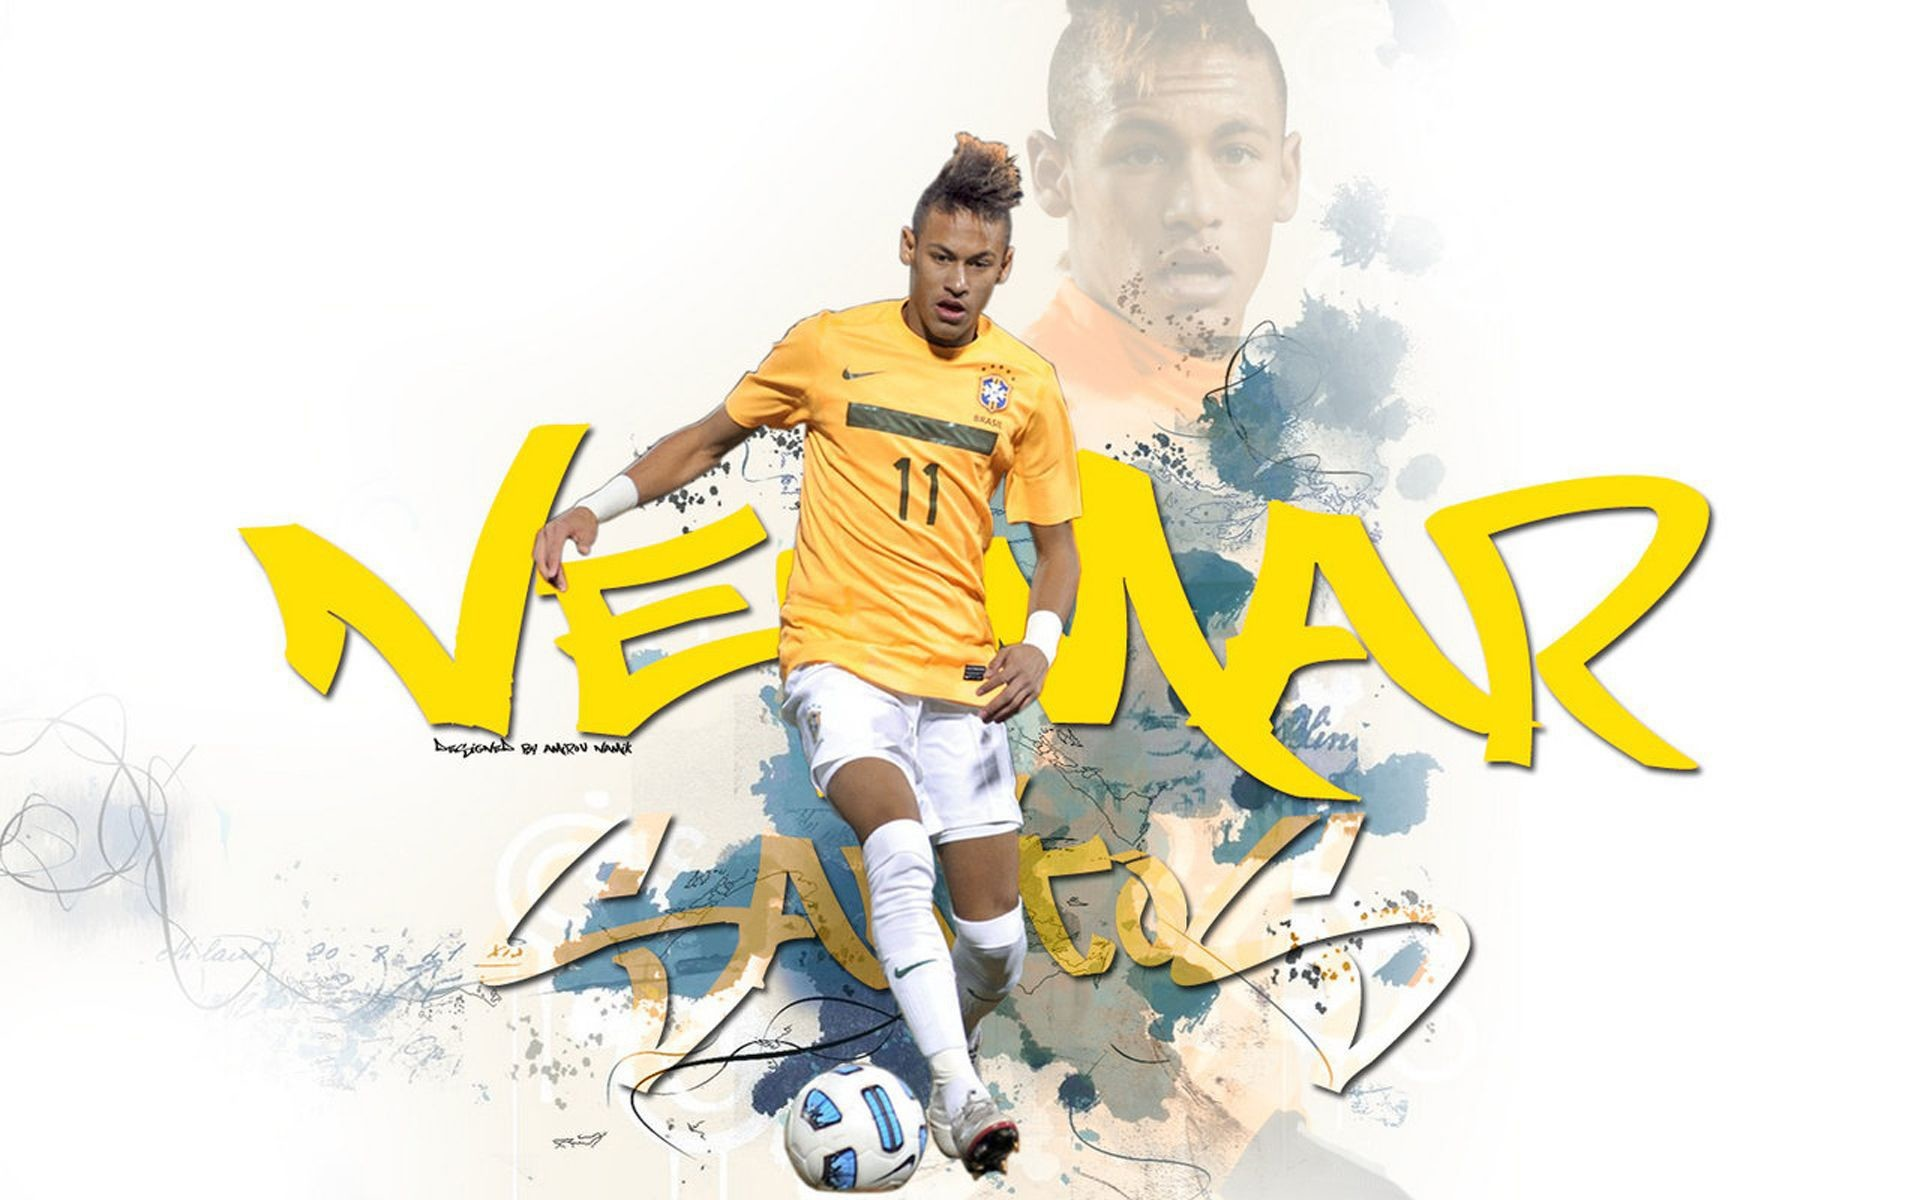 1920x1200 Free Download Cool Neymar Wallpapers HD.